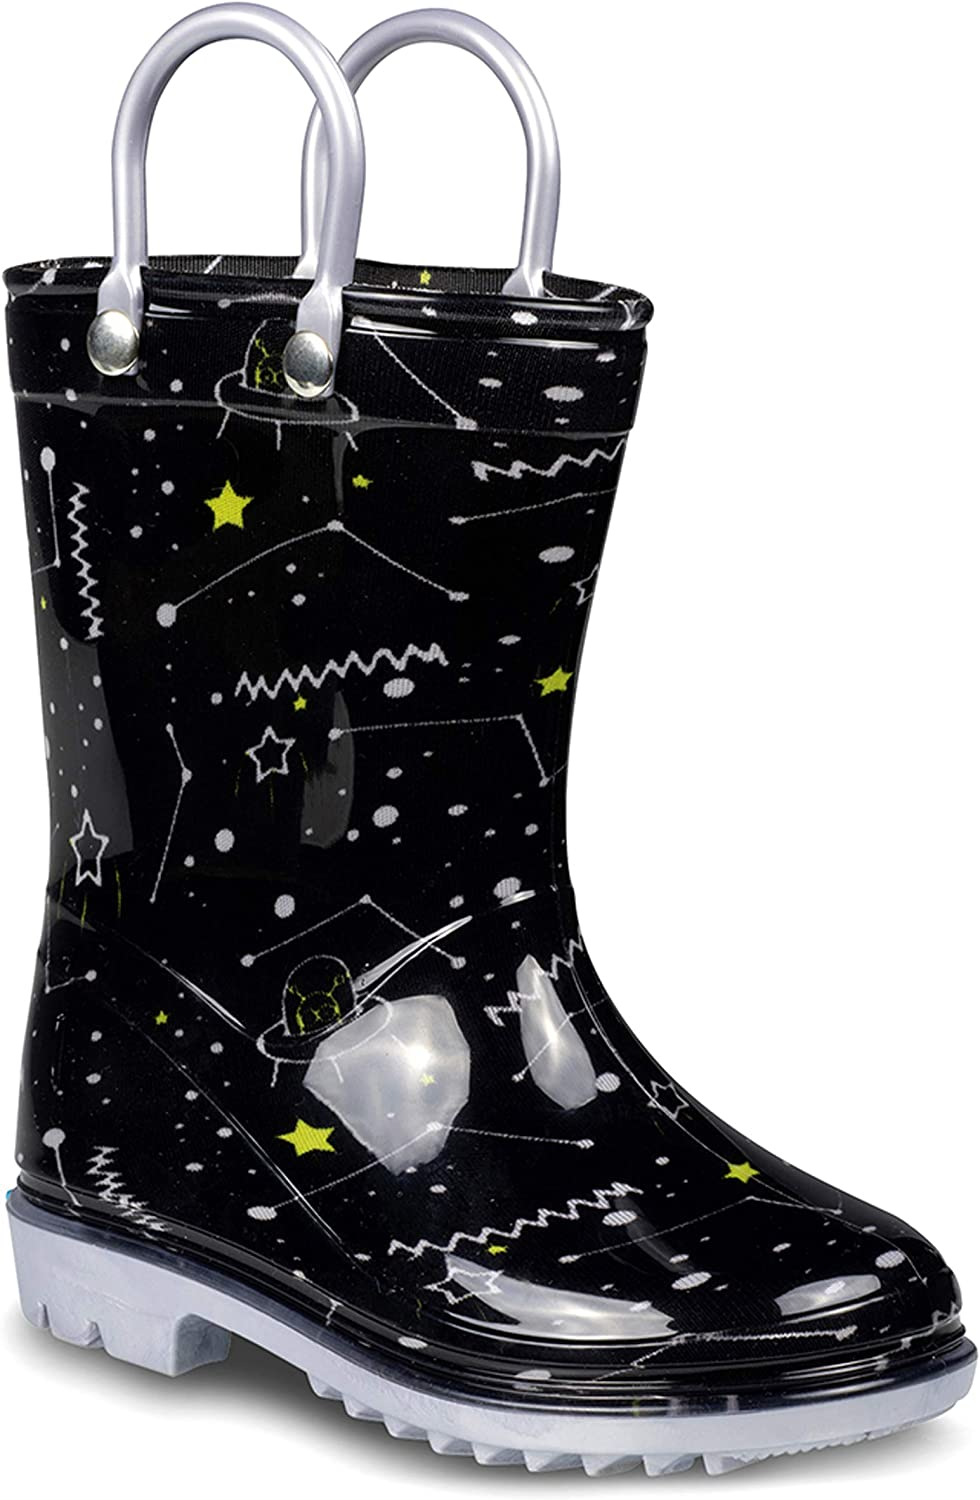 ZOOGS Printed Kids Toddler Rain Boots for Girls and Boys,Space Black ,7